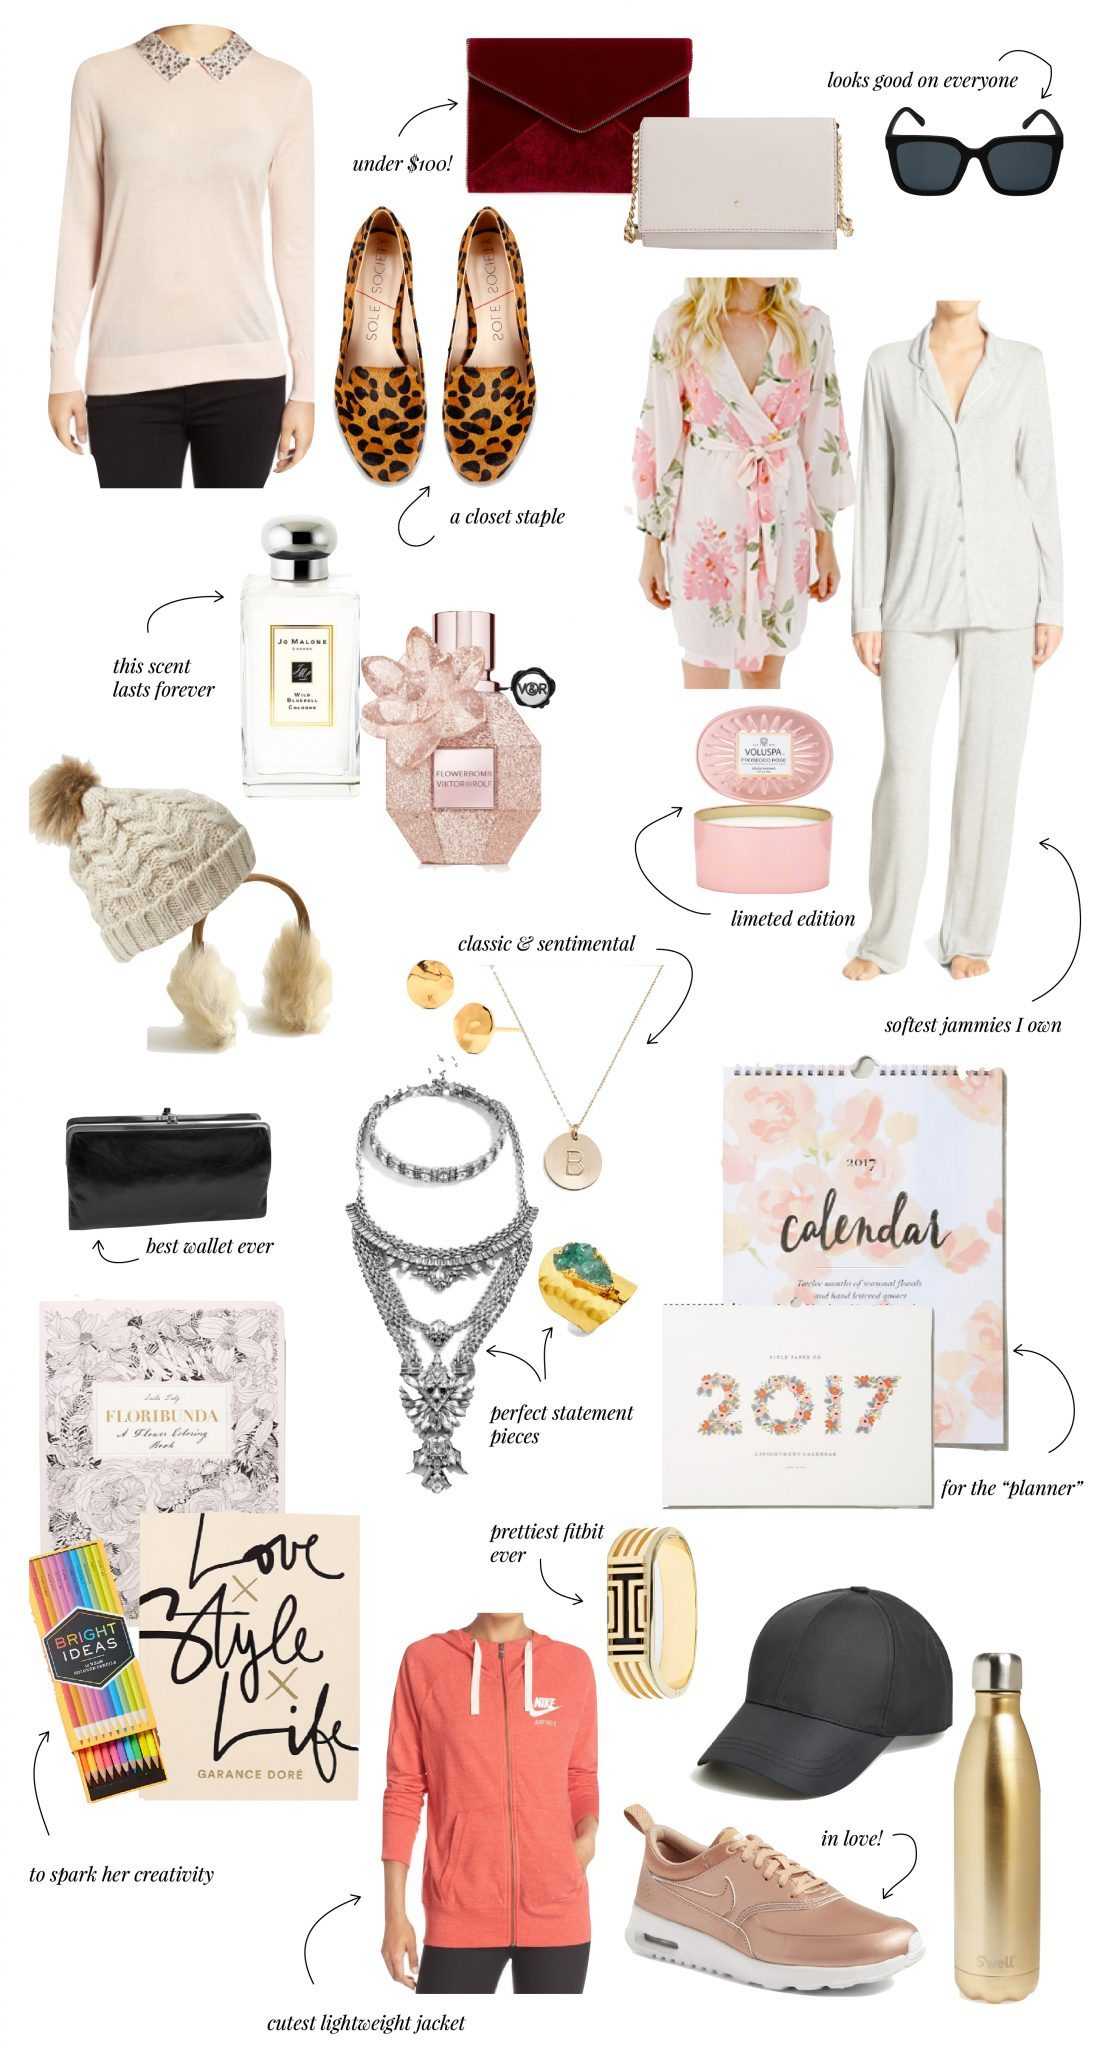 ELLE APPAREL HOLIDAY GIFT GUIDE 2016: FOR HER